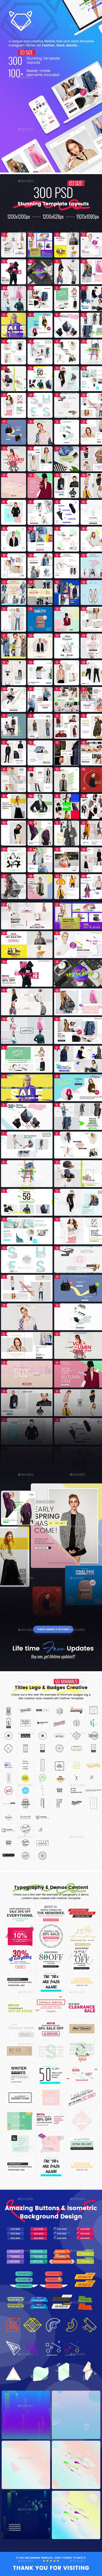 Fashion Facebook Post  300PSD — Photoshop PSD #holiday sale #logo • Available here → https://graphicriver.net/item/foxriver-fashion-facebook-post/20871292?ref=pxcr